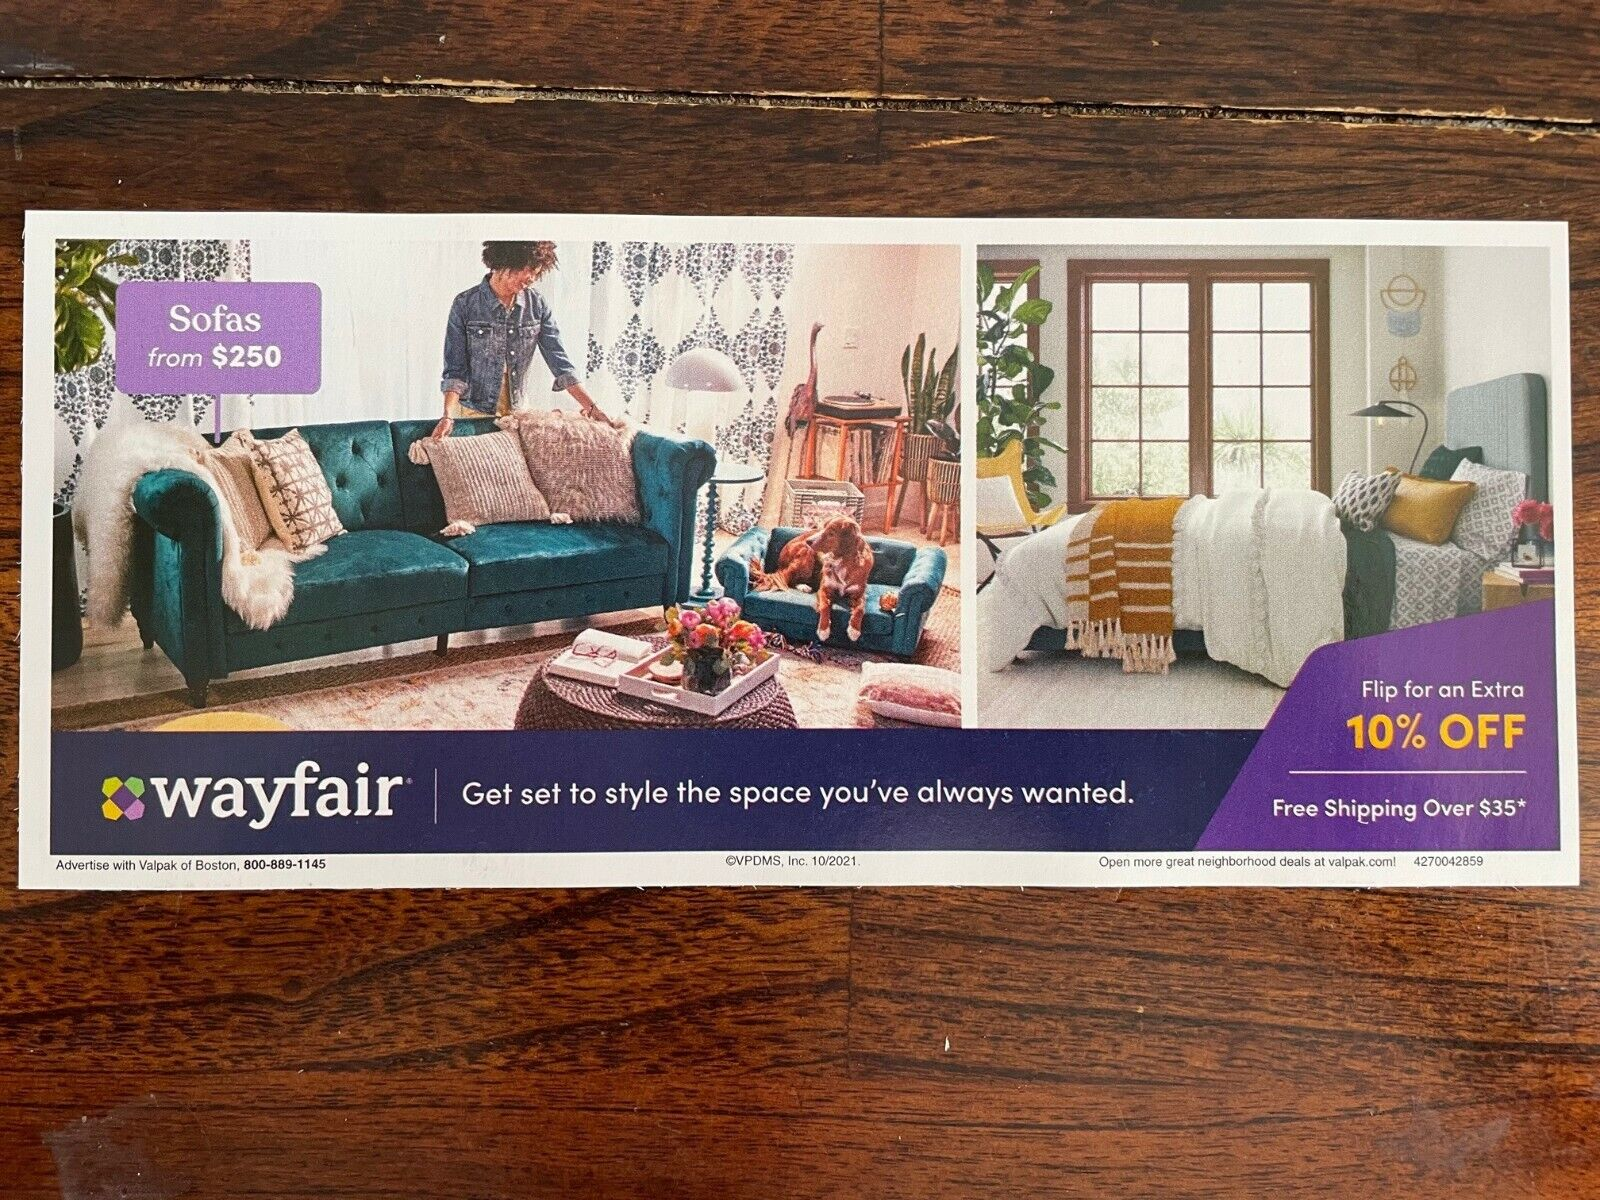 Wayfair 10 Off Coupon For First Time Shopper, Exp 12/14/21  - $3.50